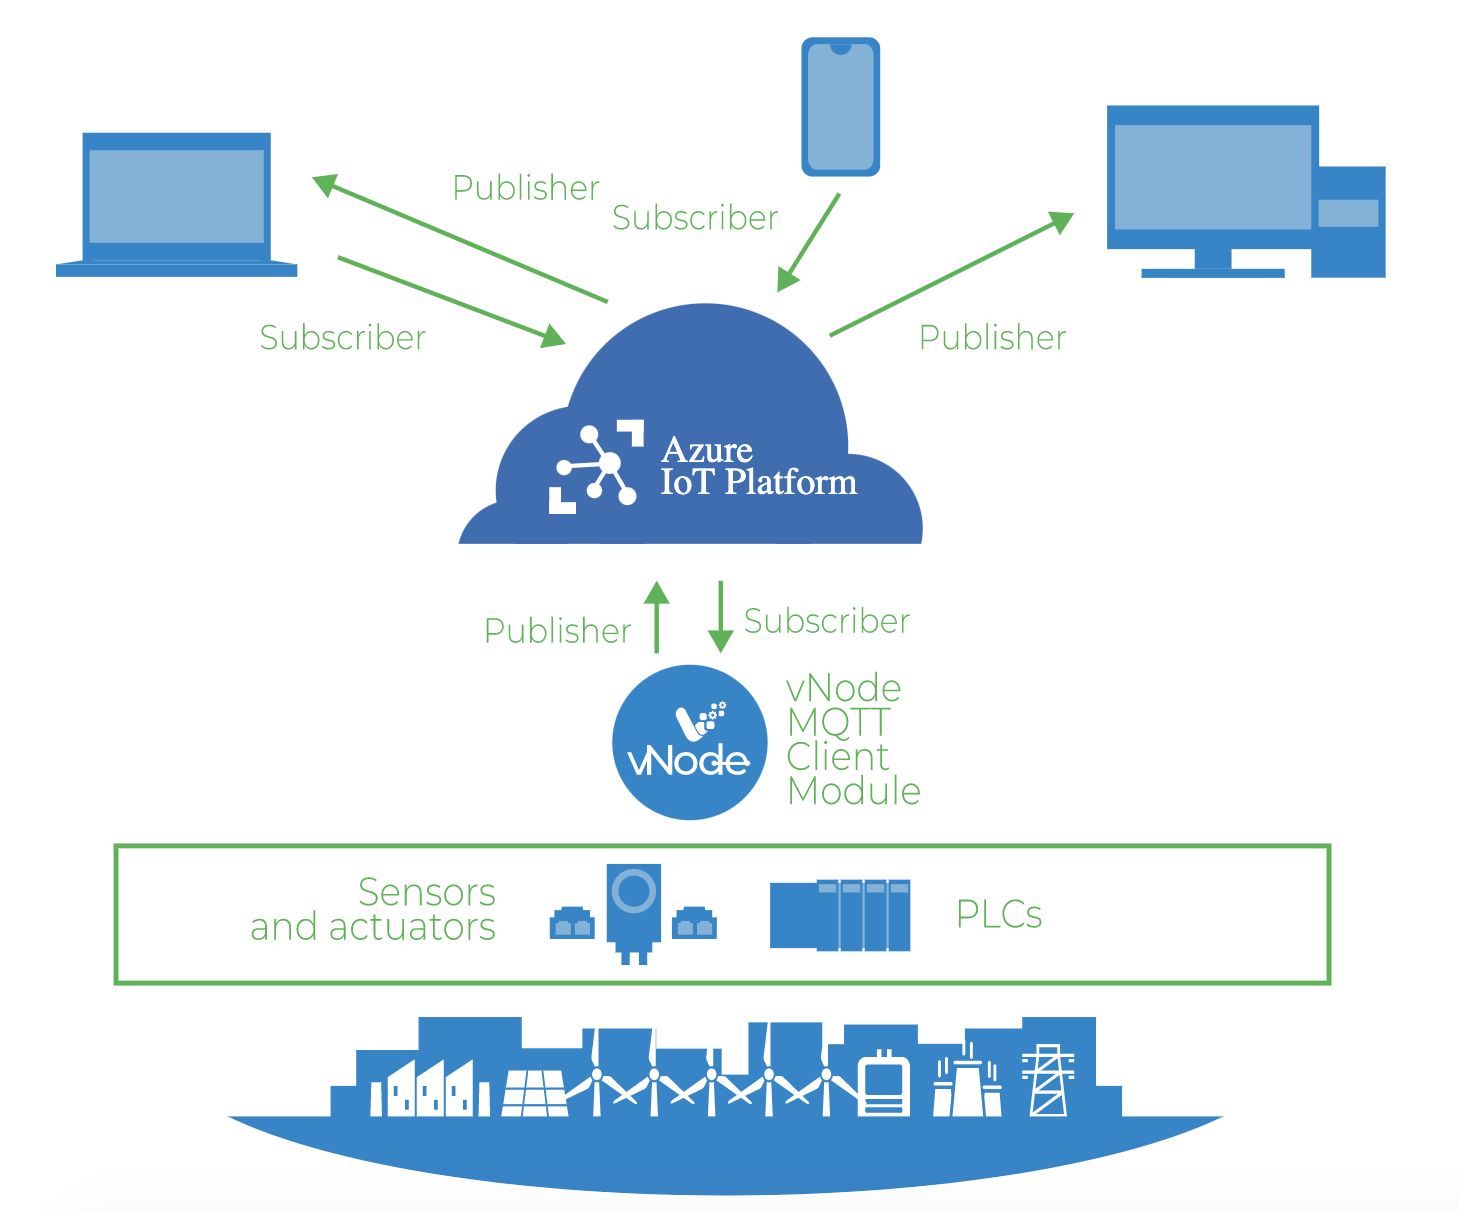 Connect your plant's PLCs or Control Devices to Microsoft Azure IoT